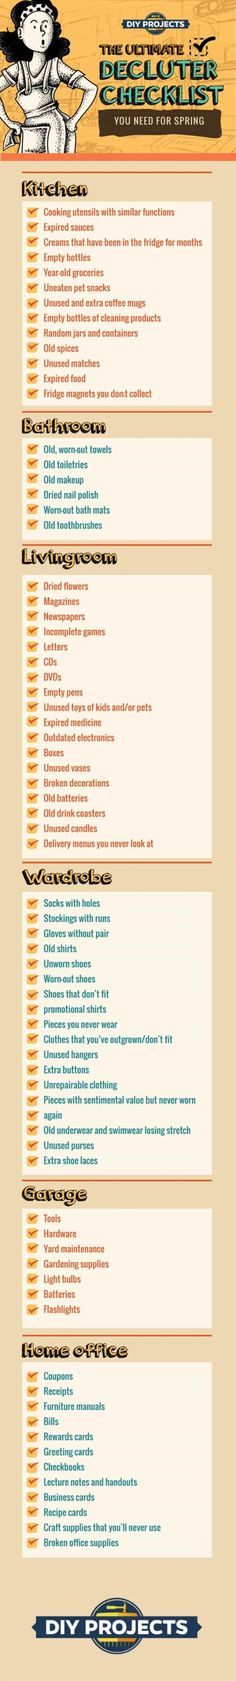 Checklist | 10 Essential Cleaning Checklist Items for Spring | DIY Projects